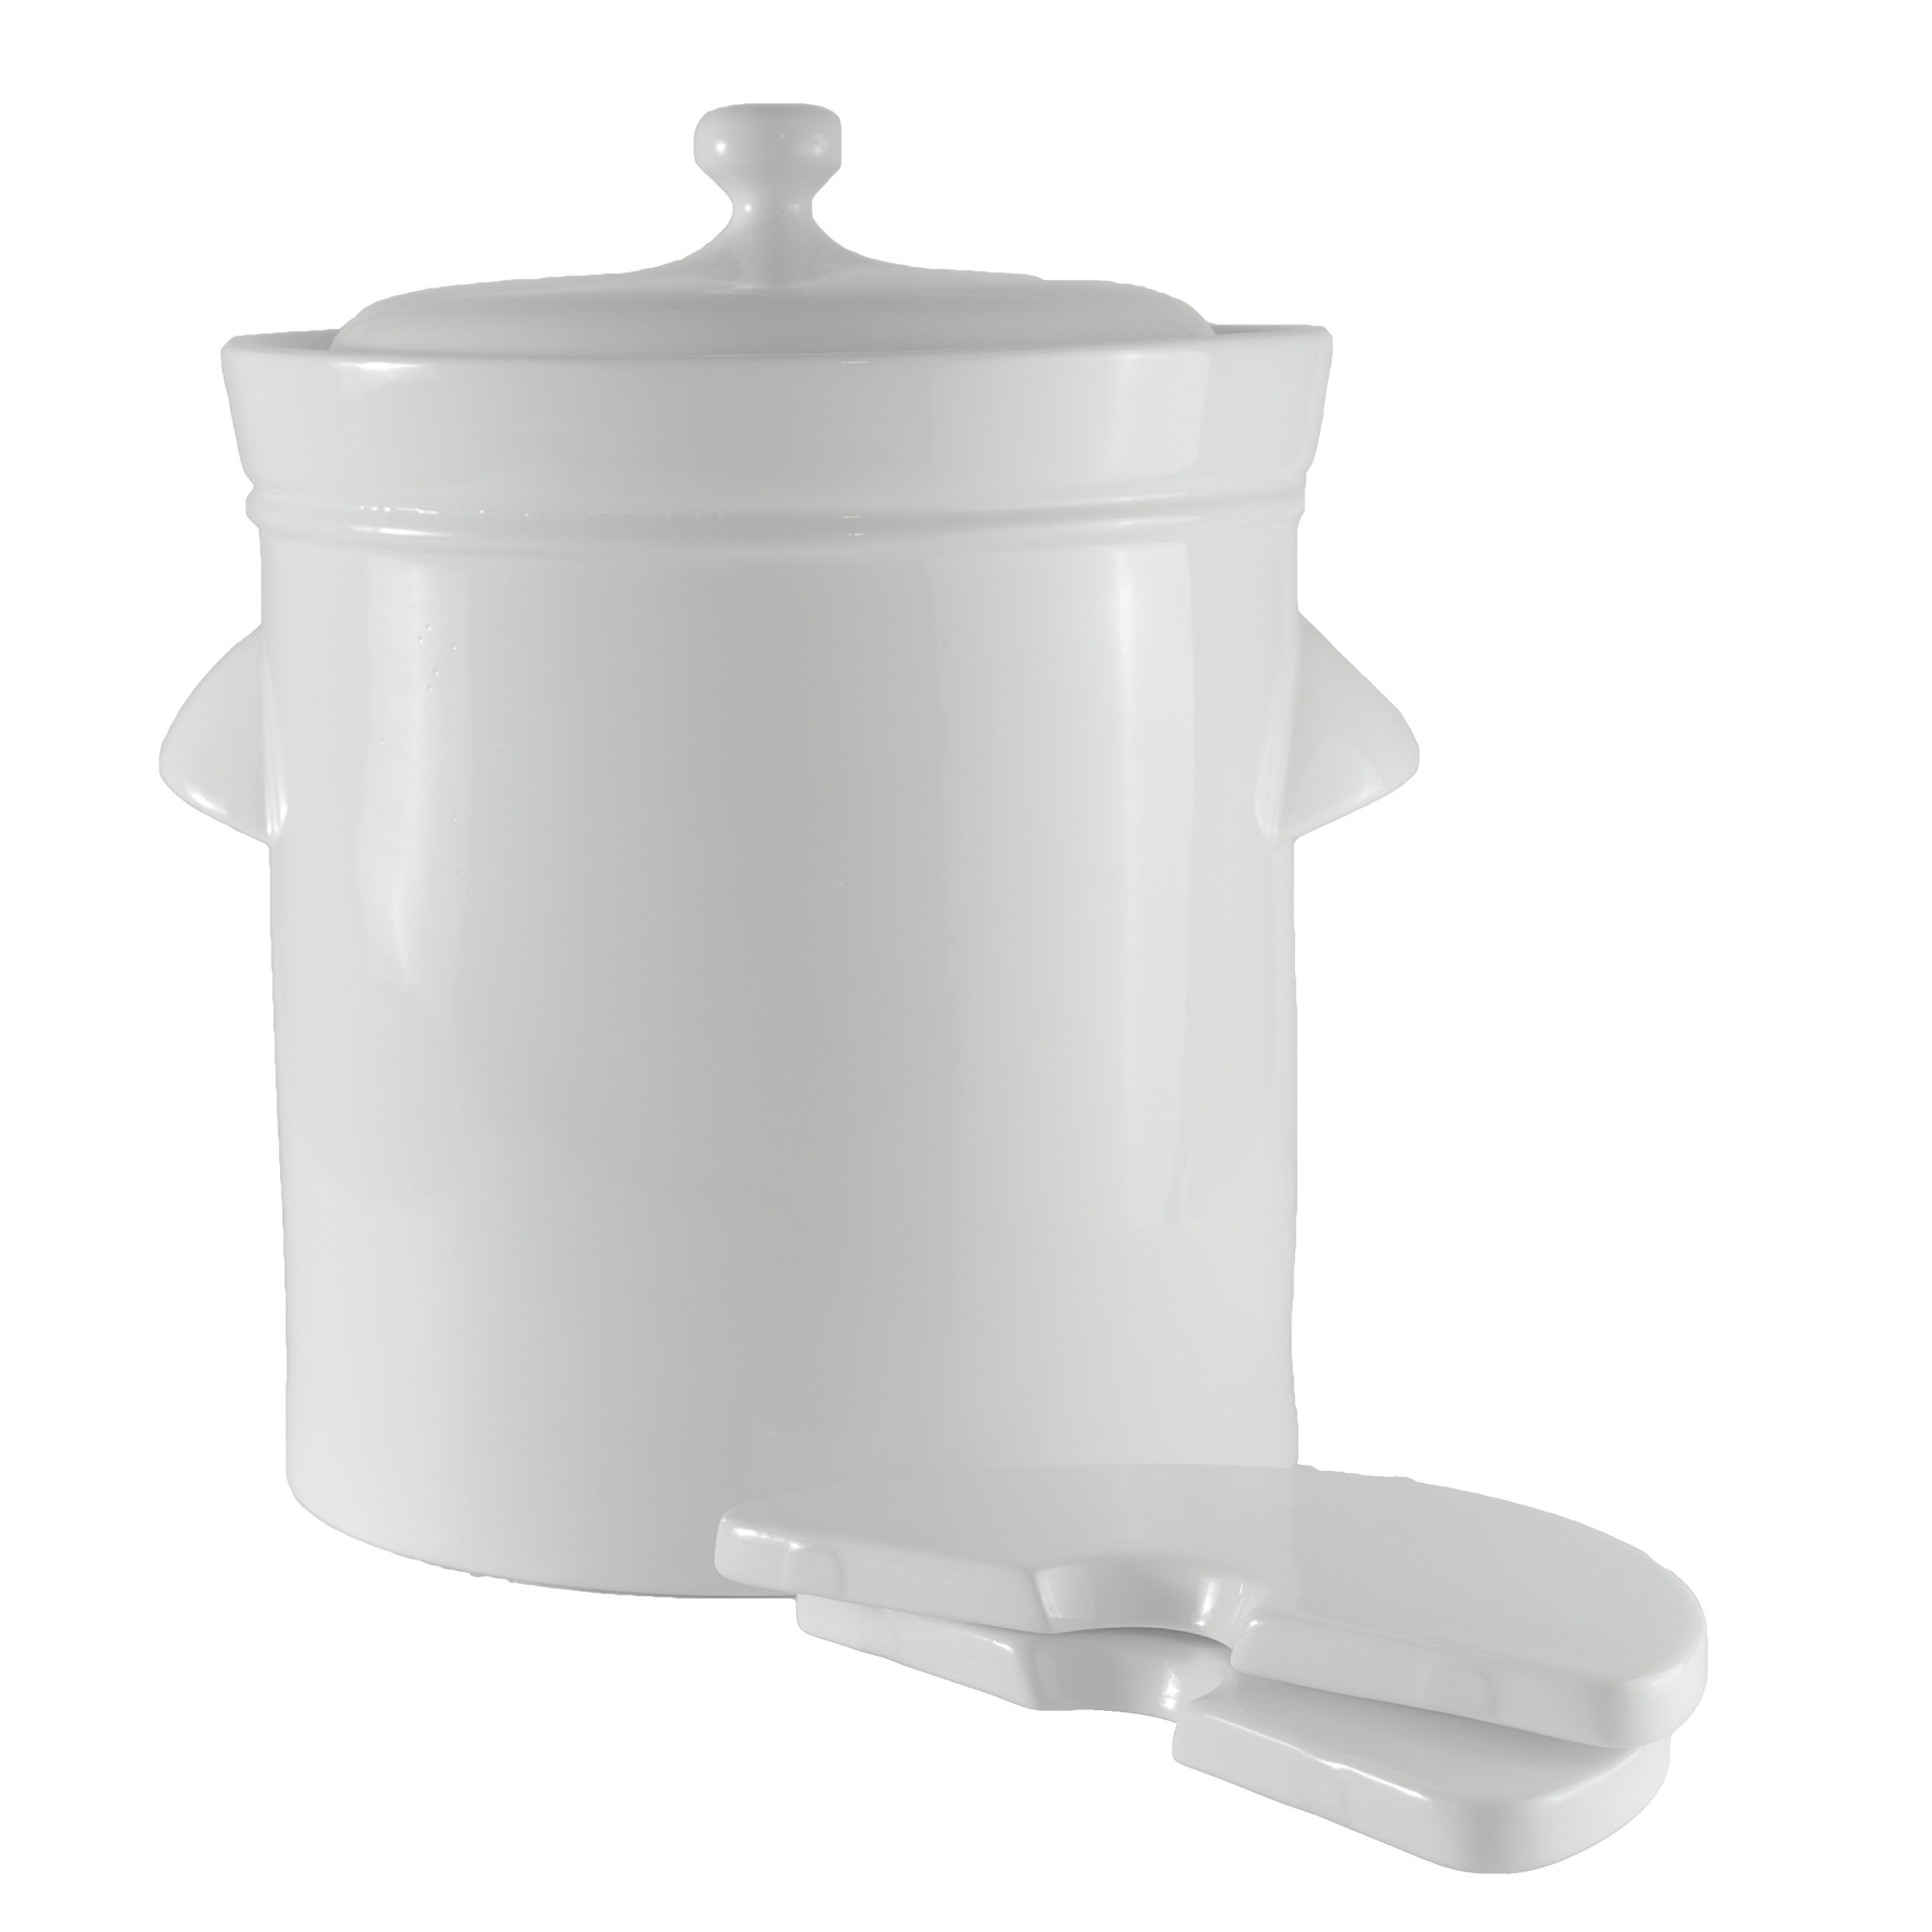 Cultured Sense 10 Liter Fermentation Crock for Sauerkraut, Pickles, Kimchee and More! Includes Weights and Lid